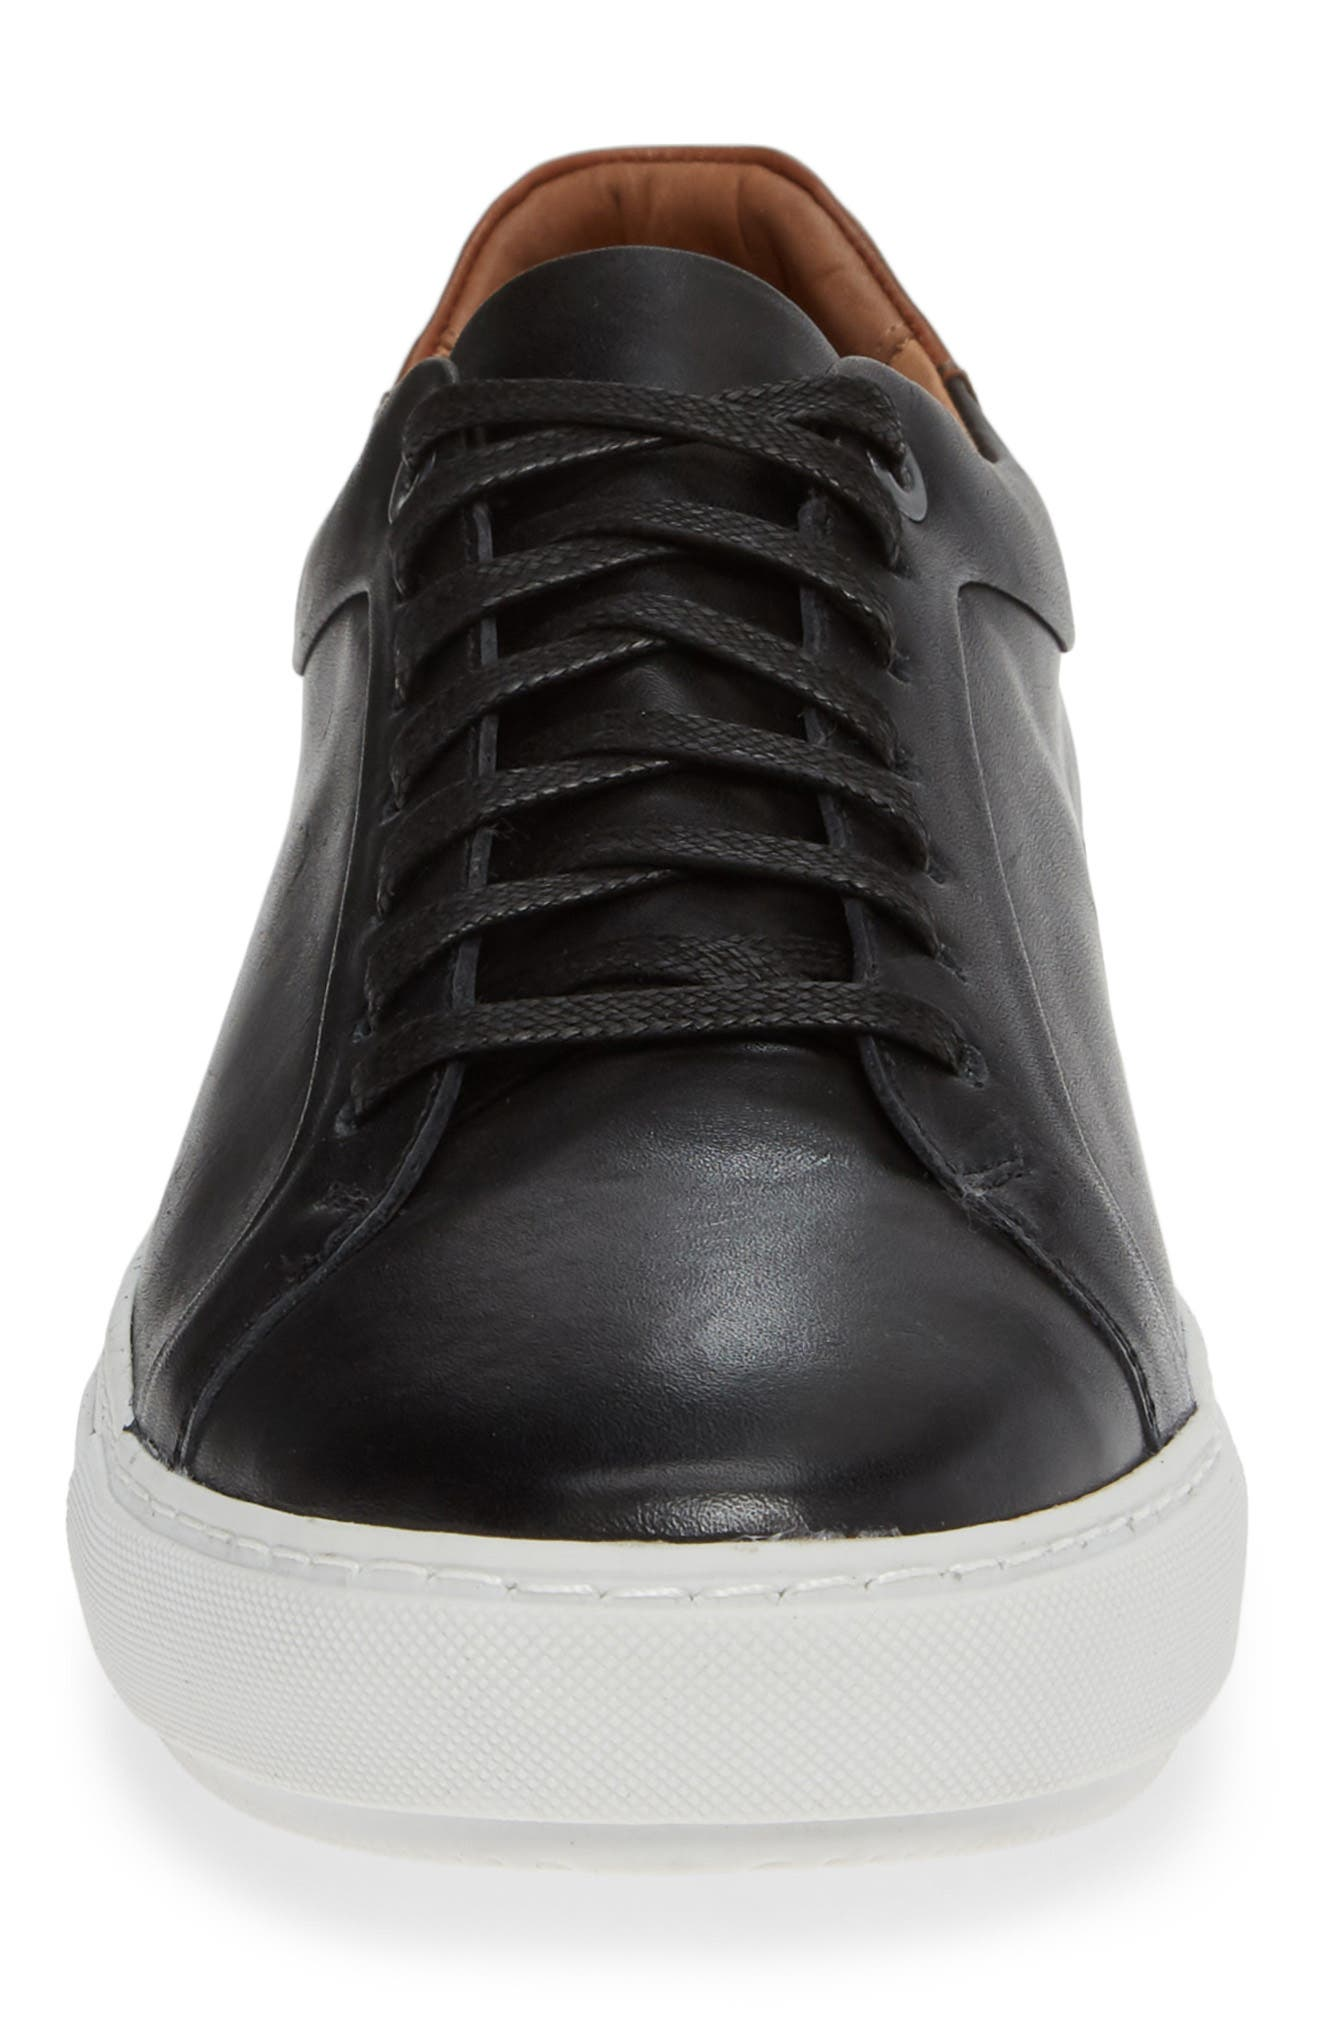 NORDSTROM MEN'S SHOP, Zack Sneaker, Alternate thumbnail 4, color, BLACK LEATHER